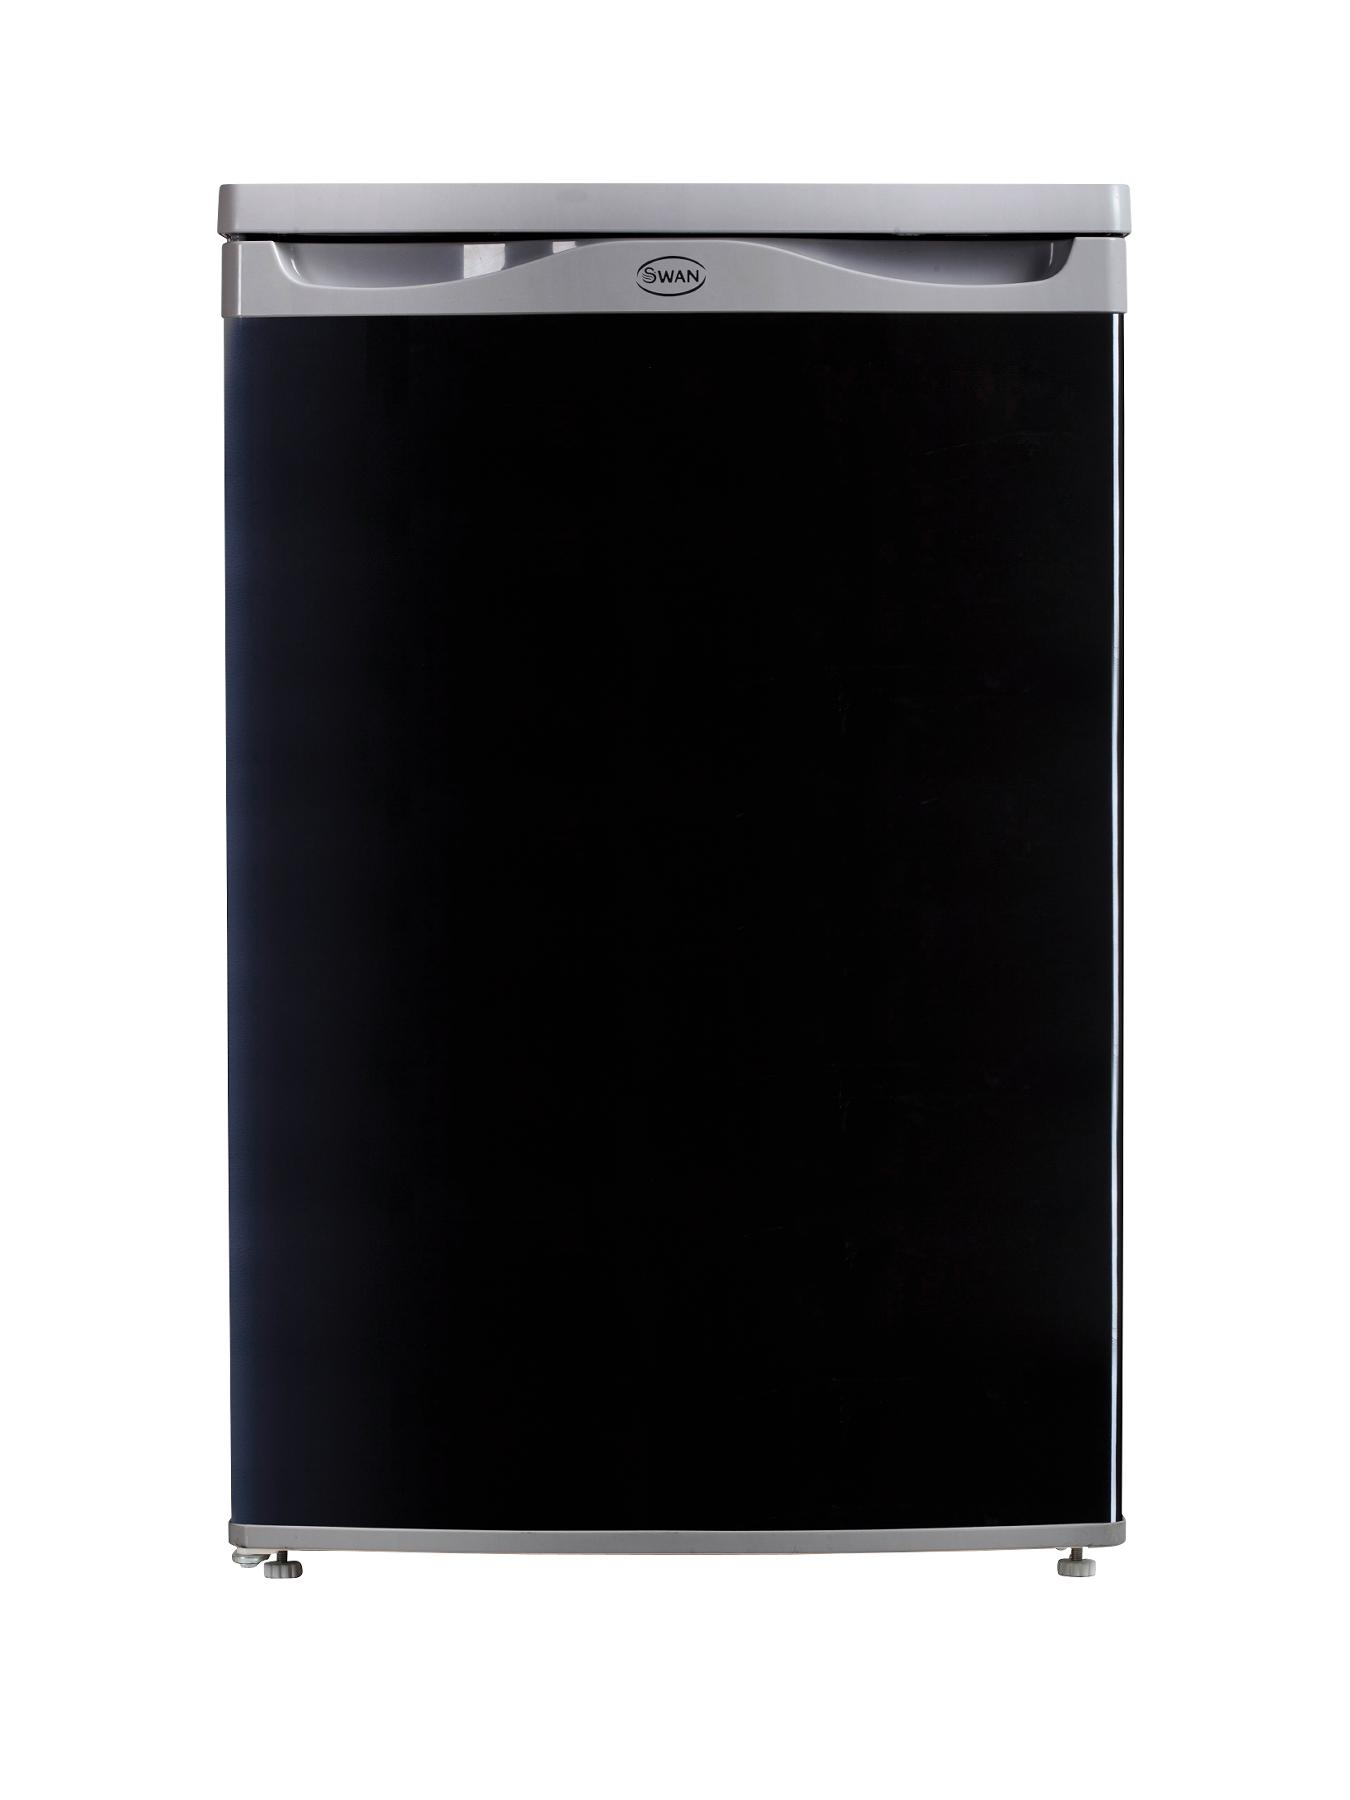 SR5141B 55cm Under-counter Larder Fridge - Black at Littlewoods